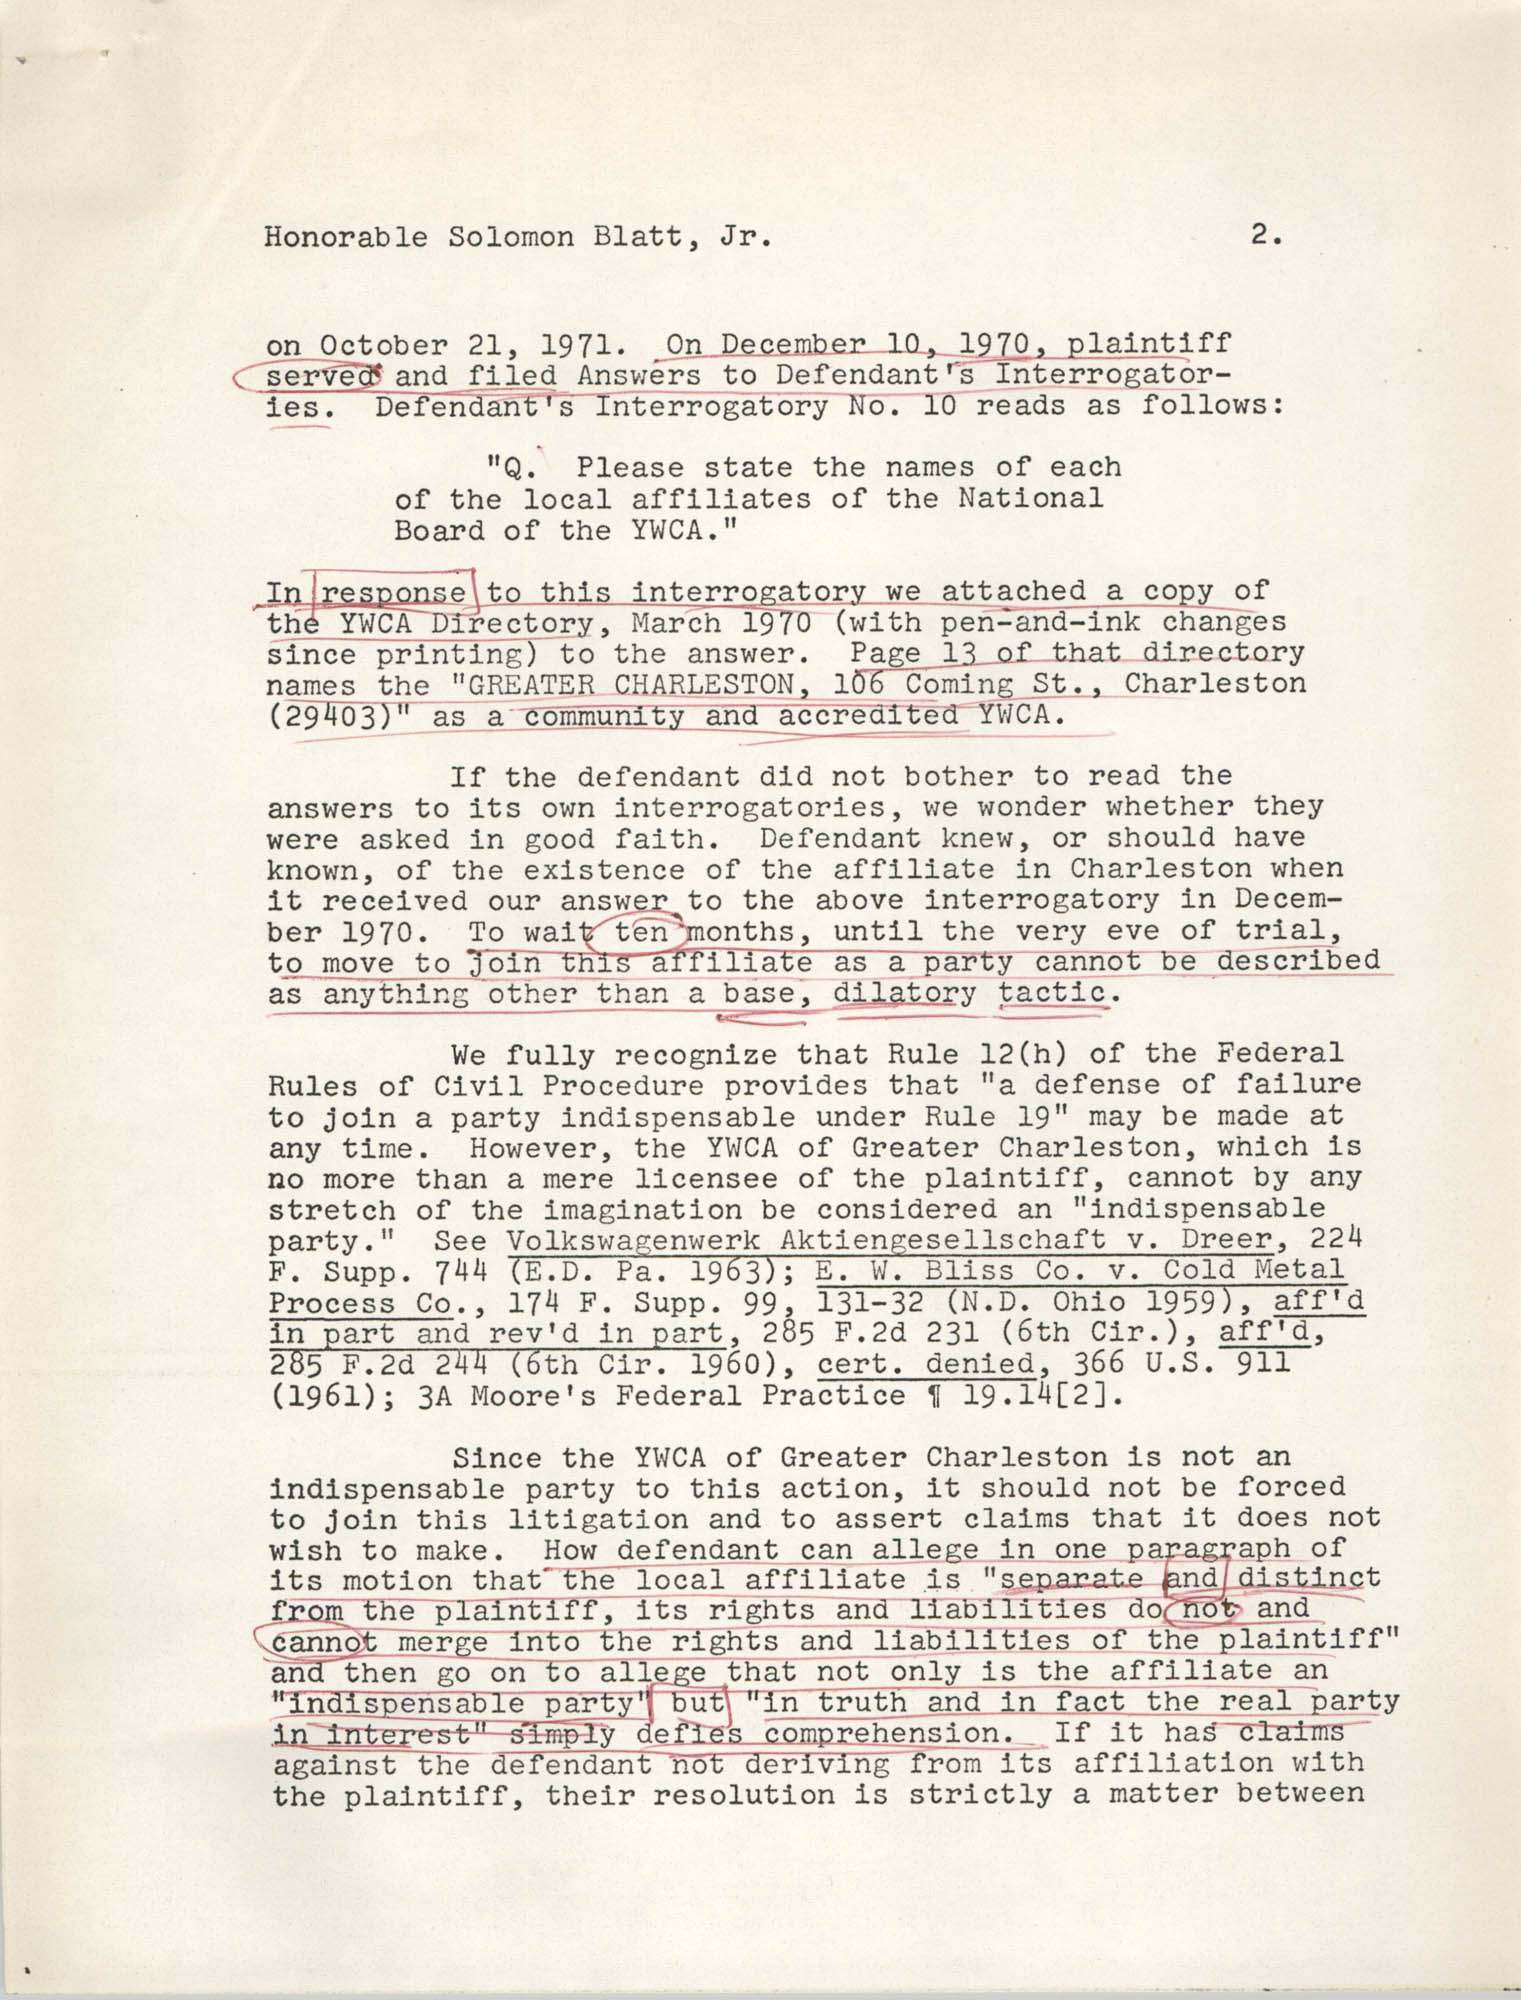 Letter from William C. Pelster to Honorable Solomon Blatt, Jr., October 29, 1971, Page 2